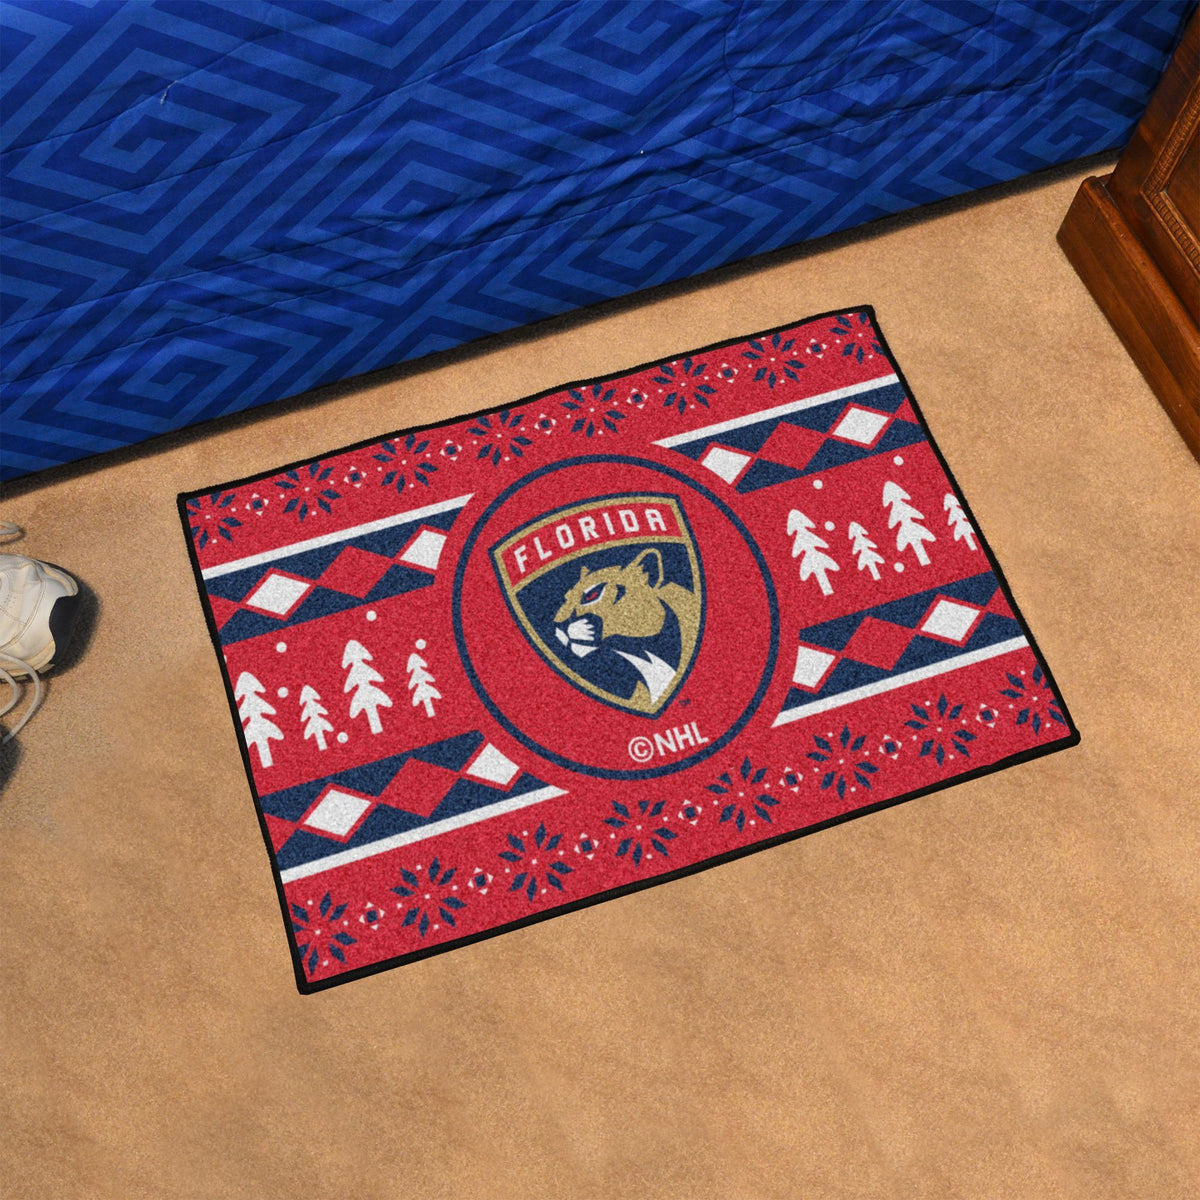 NHL - Holiday Sweater Starter Mat NHL Mats, Rectangular Mats, Holiday Sweater Starter Mat, NHL, Home Fan Mats Florida Panthers